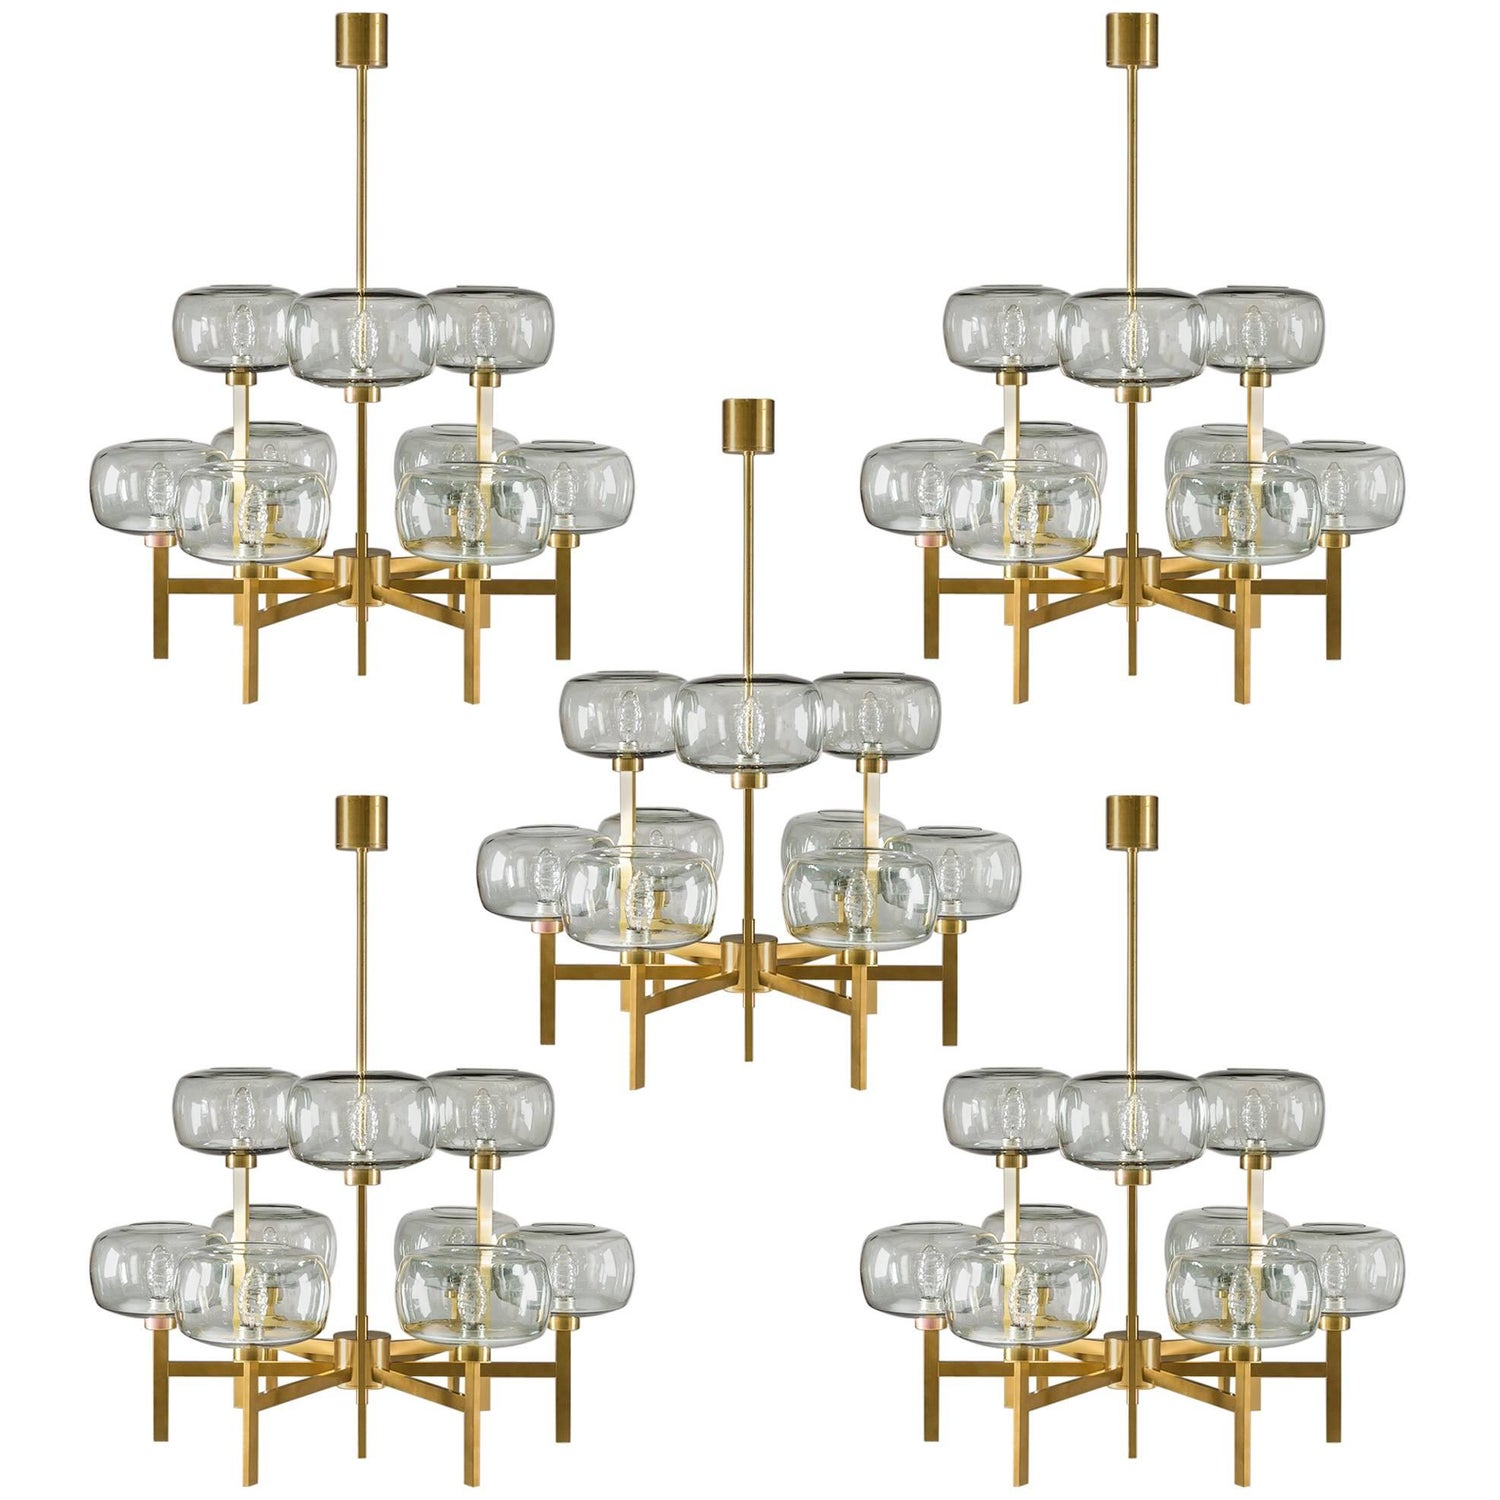 Large swedish chandelier in brass and glass by holger johansson five swedish chandeliers in brass and glass by holger johansson arubaitofo Gallery